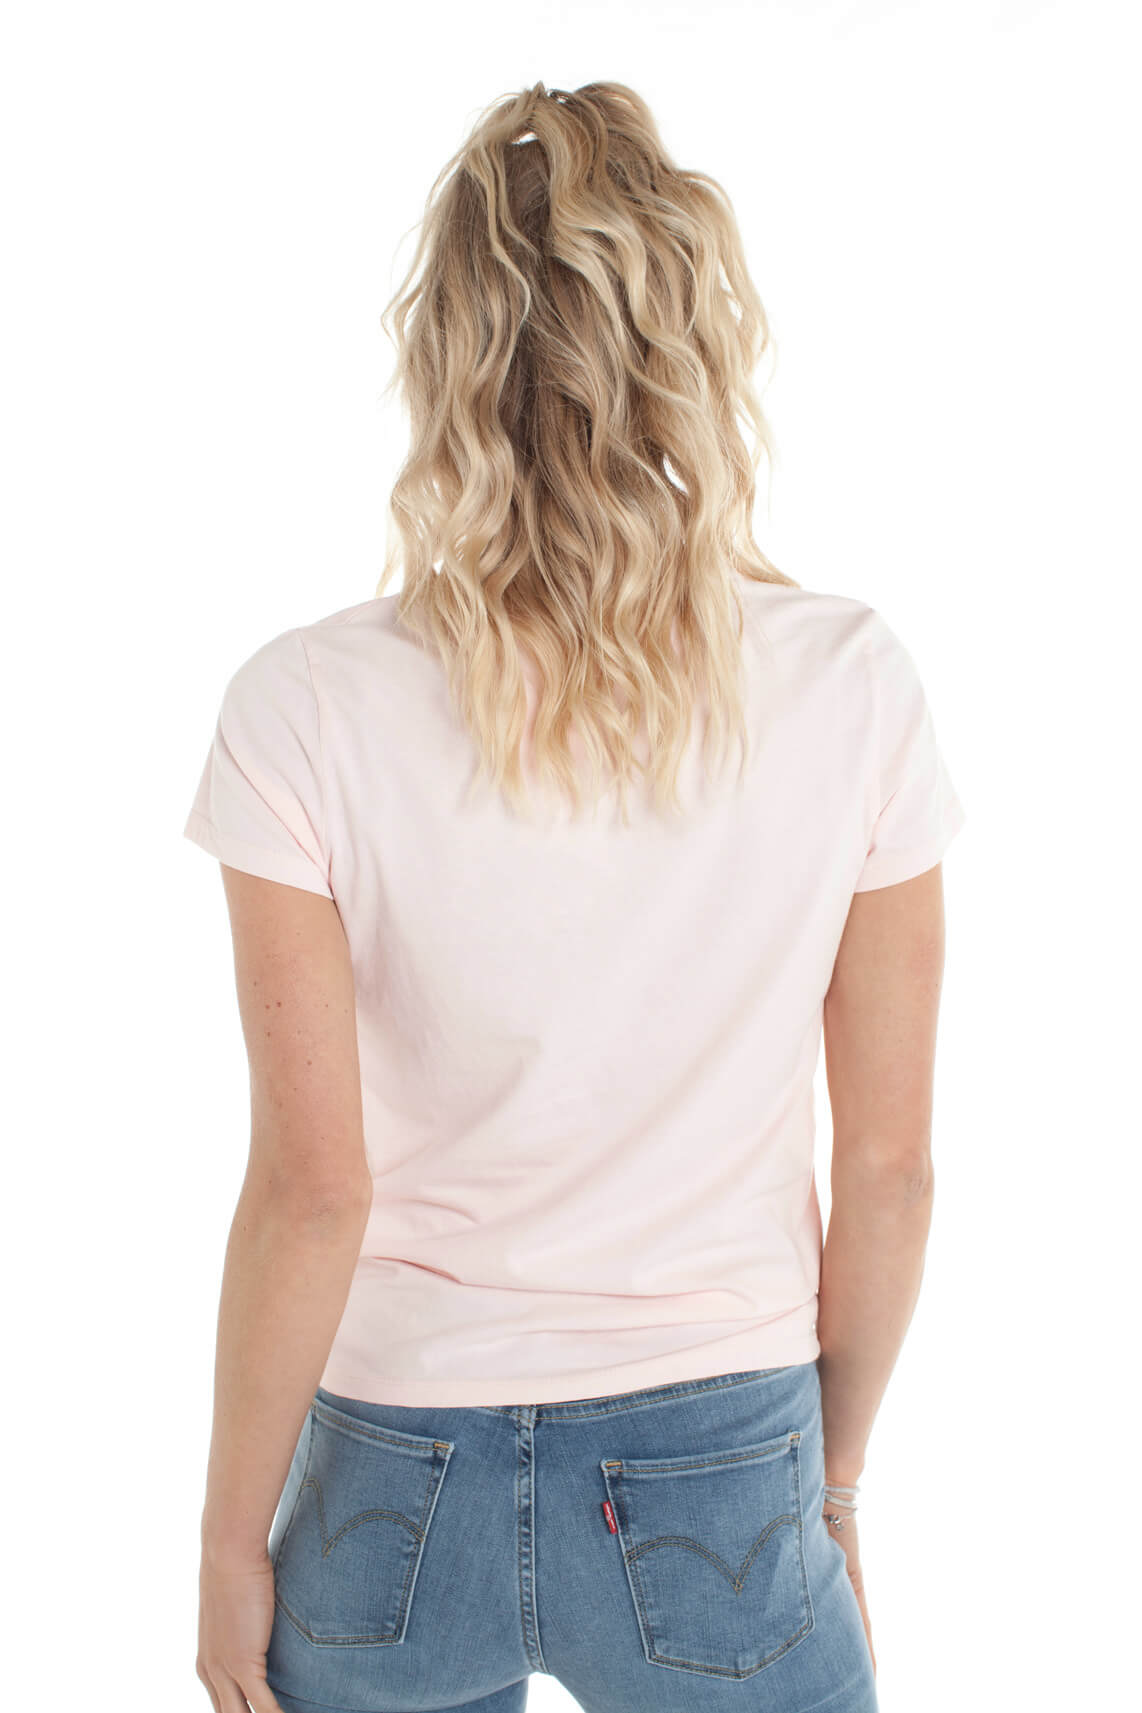 Levi s Dames Basic shirt roze